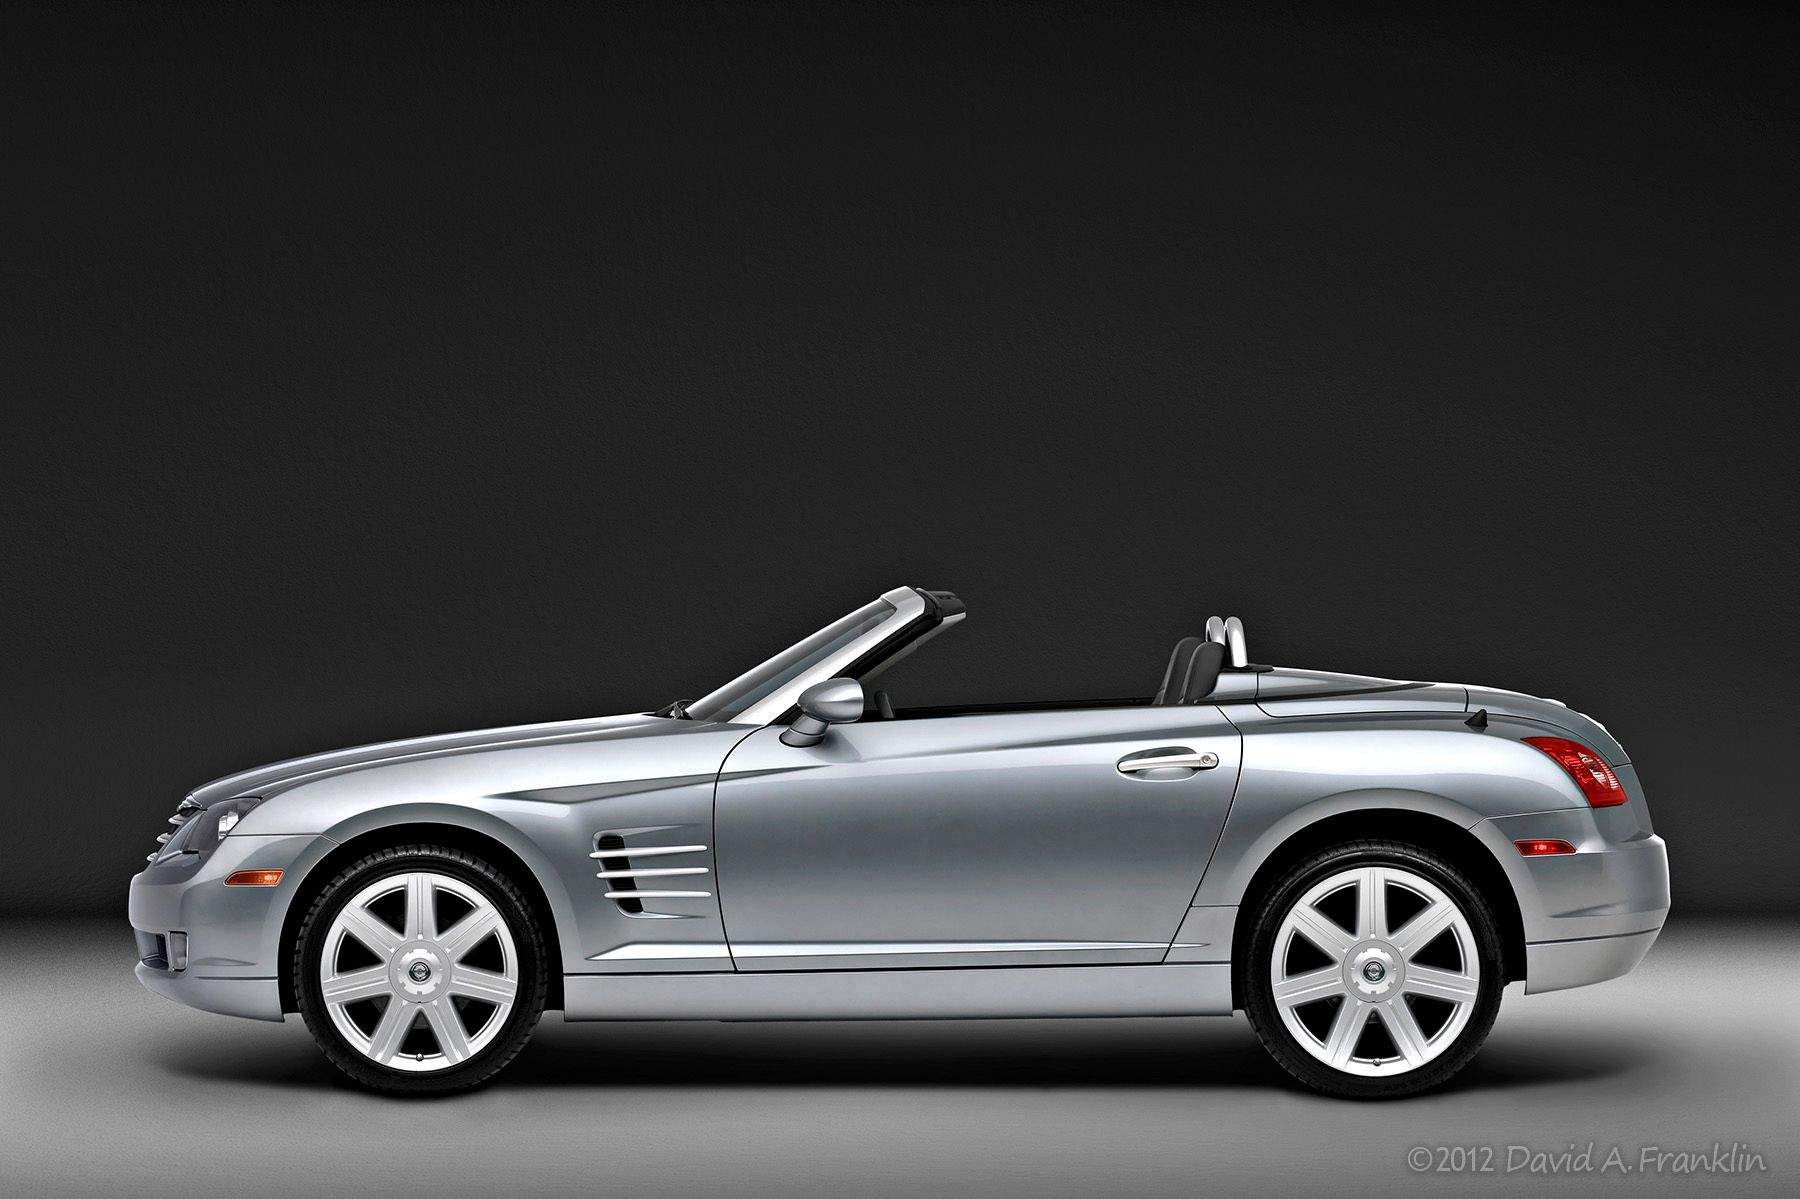 ChryslerCrossfireConvertible_Profile_SoftLighting_Studio